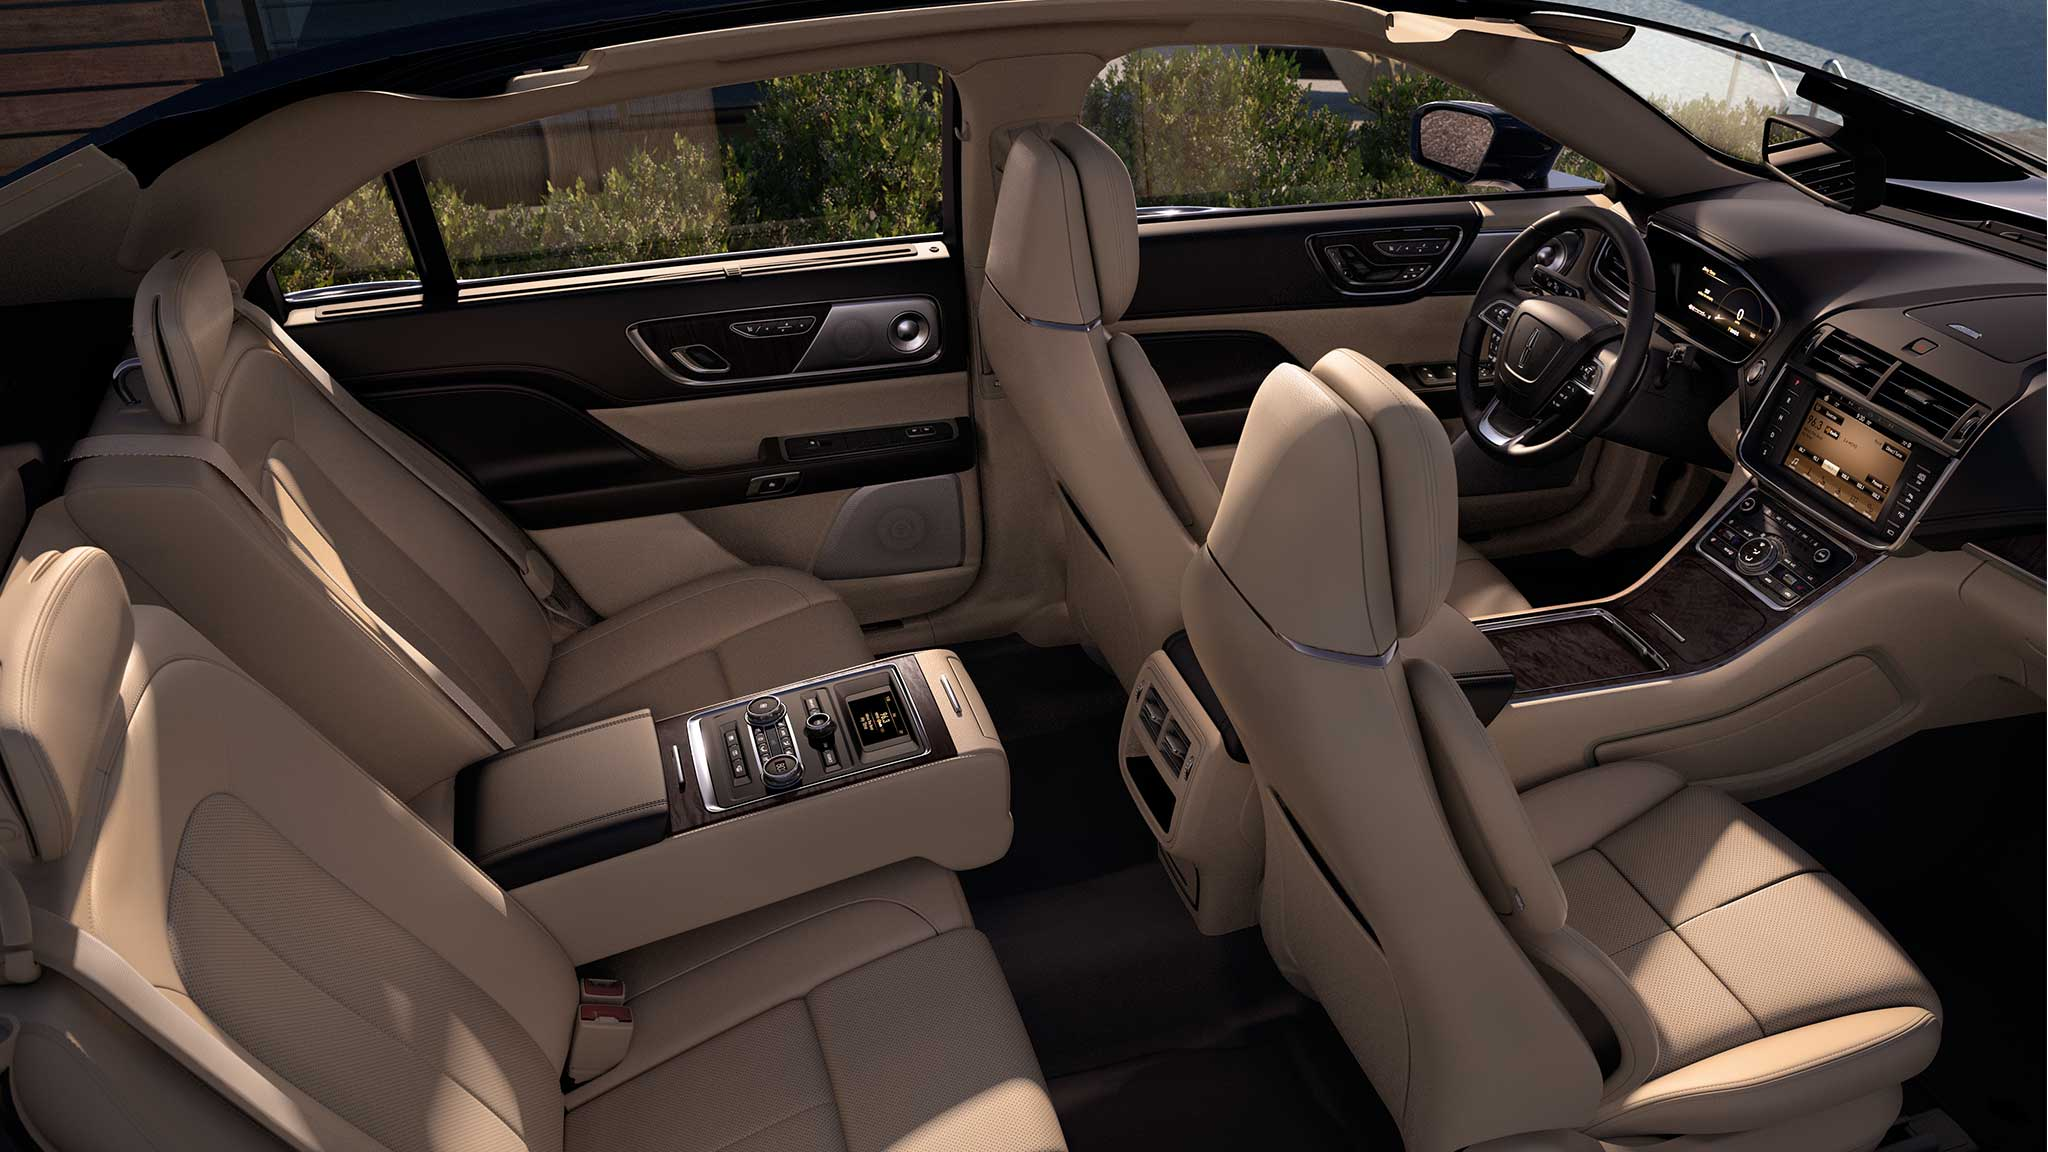 Autotrader Names Best Car Interiors Under Lg on 2015 lincoln mkx suv